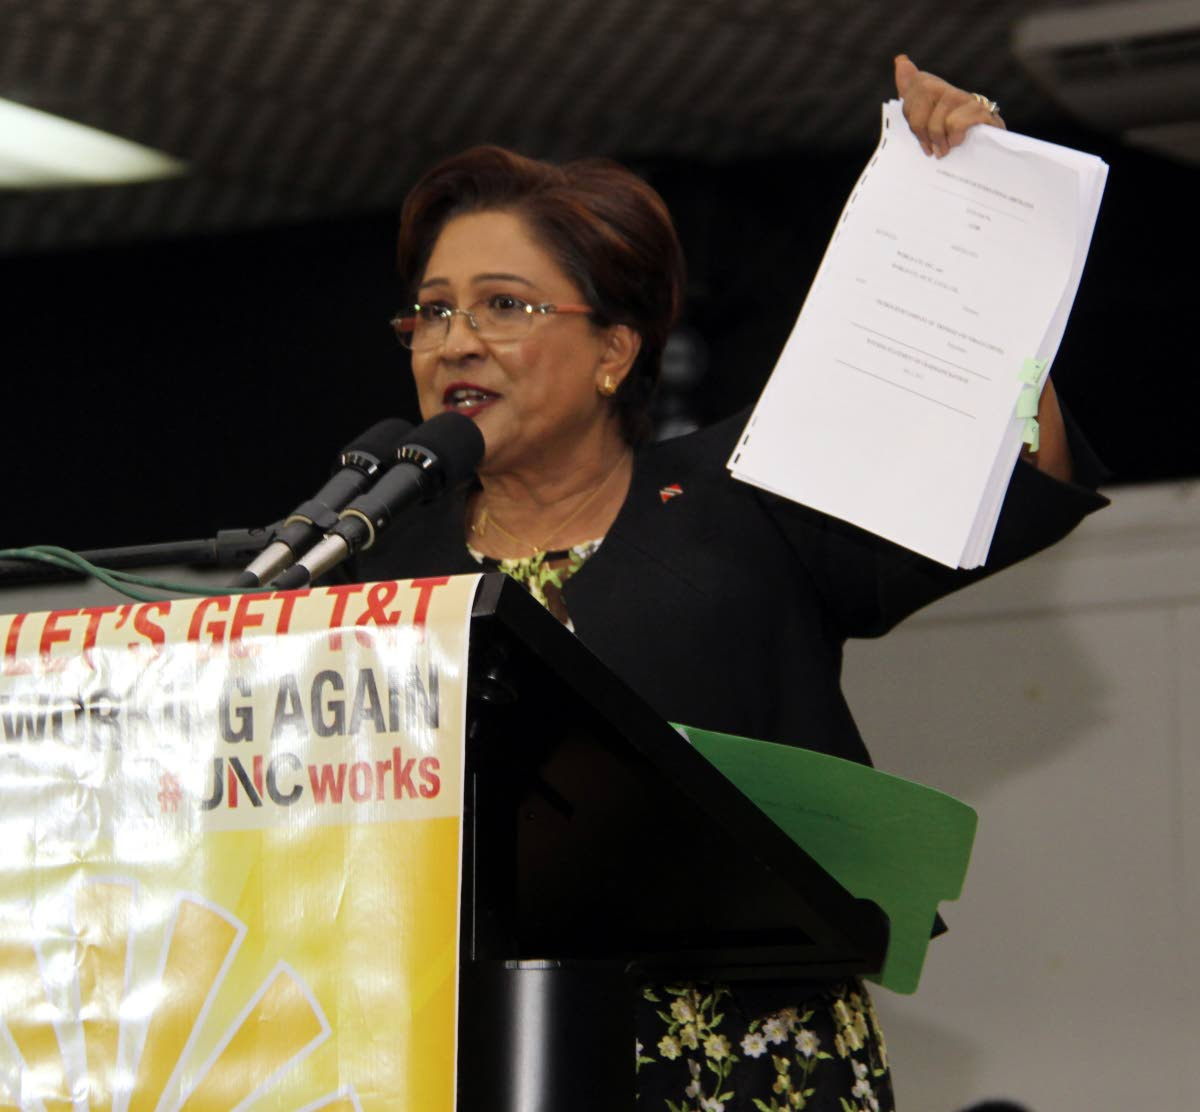 Opposition Leader Kamla Persad-Bissessar addresses supporters at the UNC's Monday Night Forum at Naparima College.